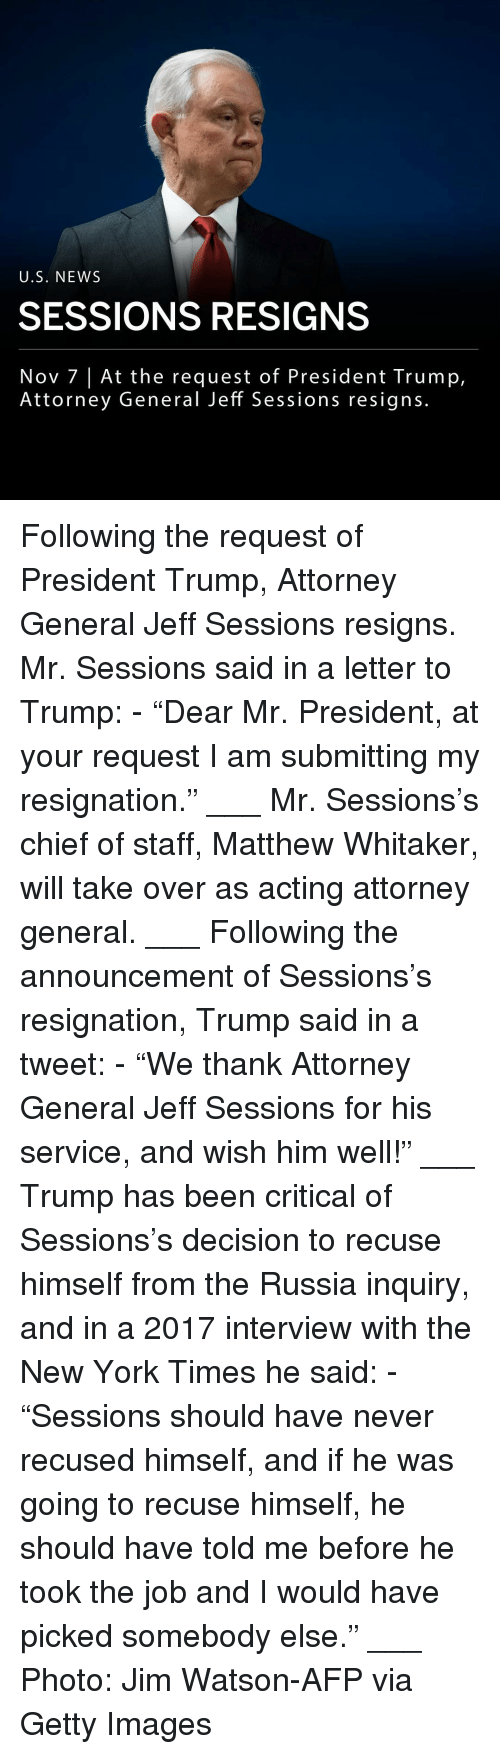 "Memes, New York, and News: U.S. NEWS  SESSIONS RESIGNS  Nov 7 |At the request of President Trump,  Attorney General Jeff Sessions resigns. Following the request of President Trump, Attorney General Jeff Sessions resigns. Mr. Sessions said in a letter to Trump: - ""Dear Mr. President, at your request I am submitting my resignation."" ___ Mr. Sessions's chief of staff, Matthew Whitaker, will take over as acting attorney general. ___ Following the announcement of Sessions's resignation, Trump said in a tweet: - ""We thank Attorney General Jeff Sessions for his service, and wish him well!"" ___ Trump has been critical of Sessions's decision to recuse himself from the Russia inquiry, and in a 2017 interview with the New York Times he said: - ""Sessions should have never recused himself, and if he was going to recuse himself, he should have told me before he took the job and I would have picked somebody else."" ___ Photo: Jim Watson-AFP via Getty Images"